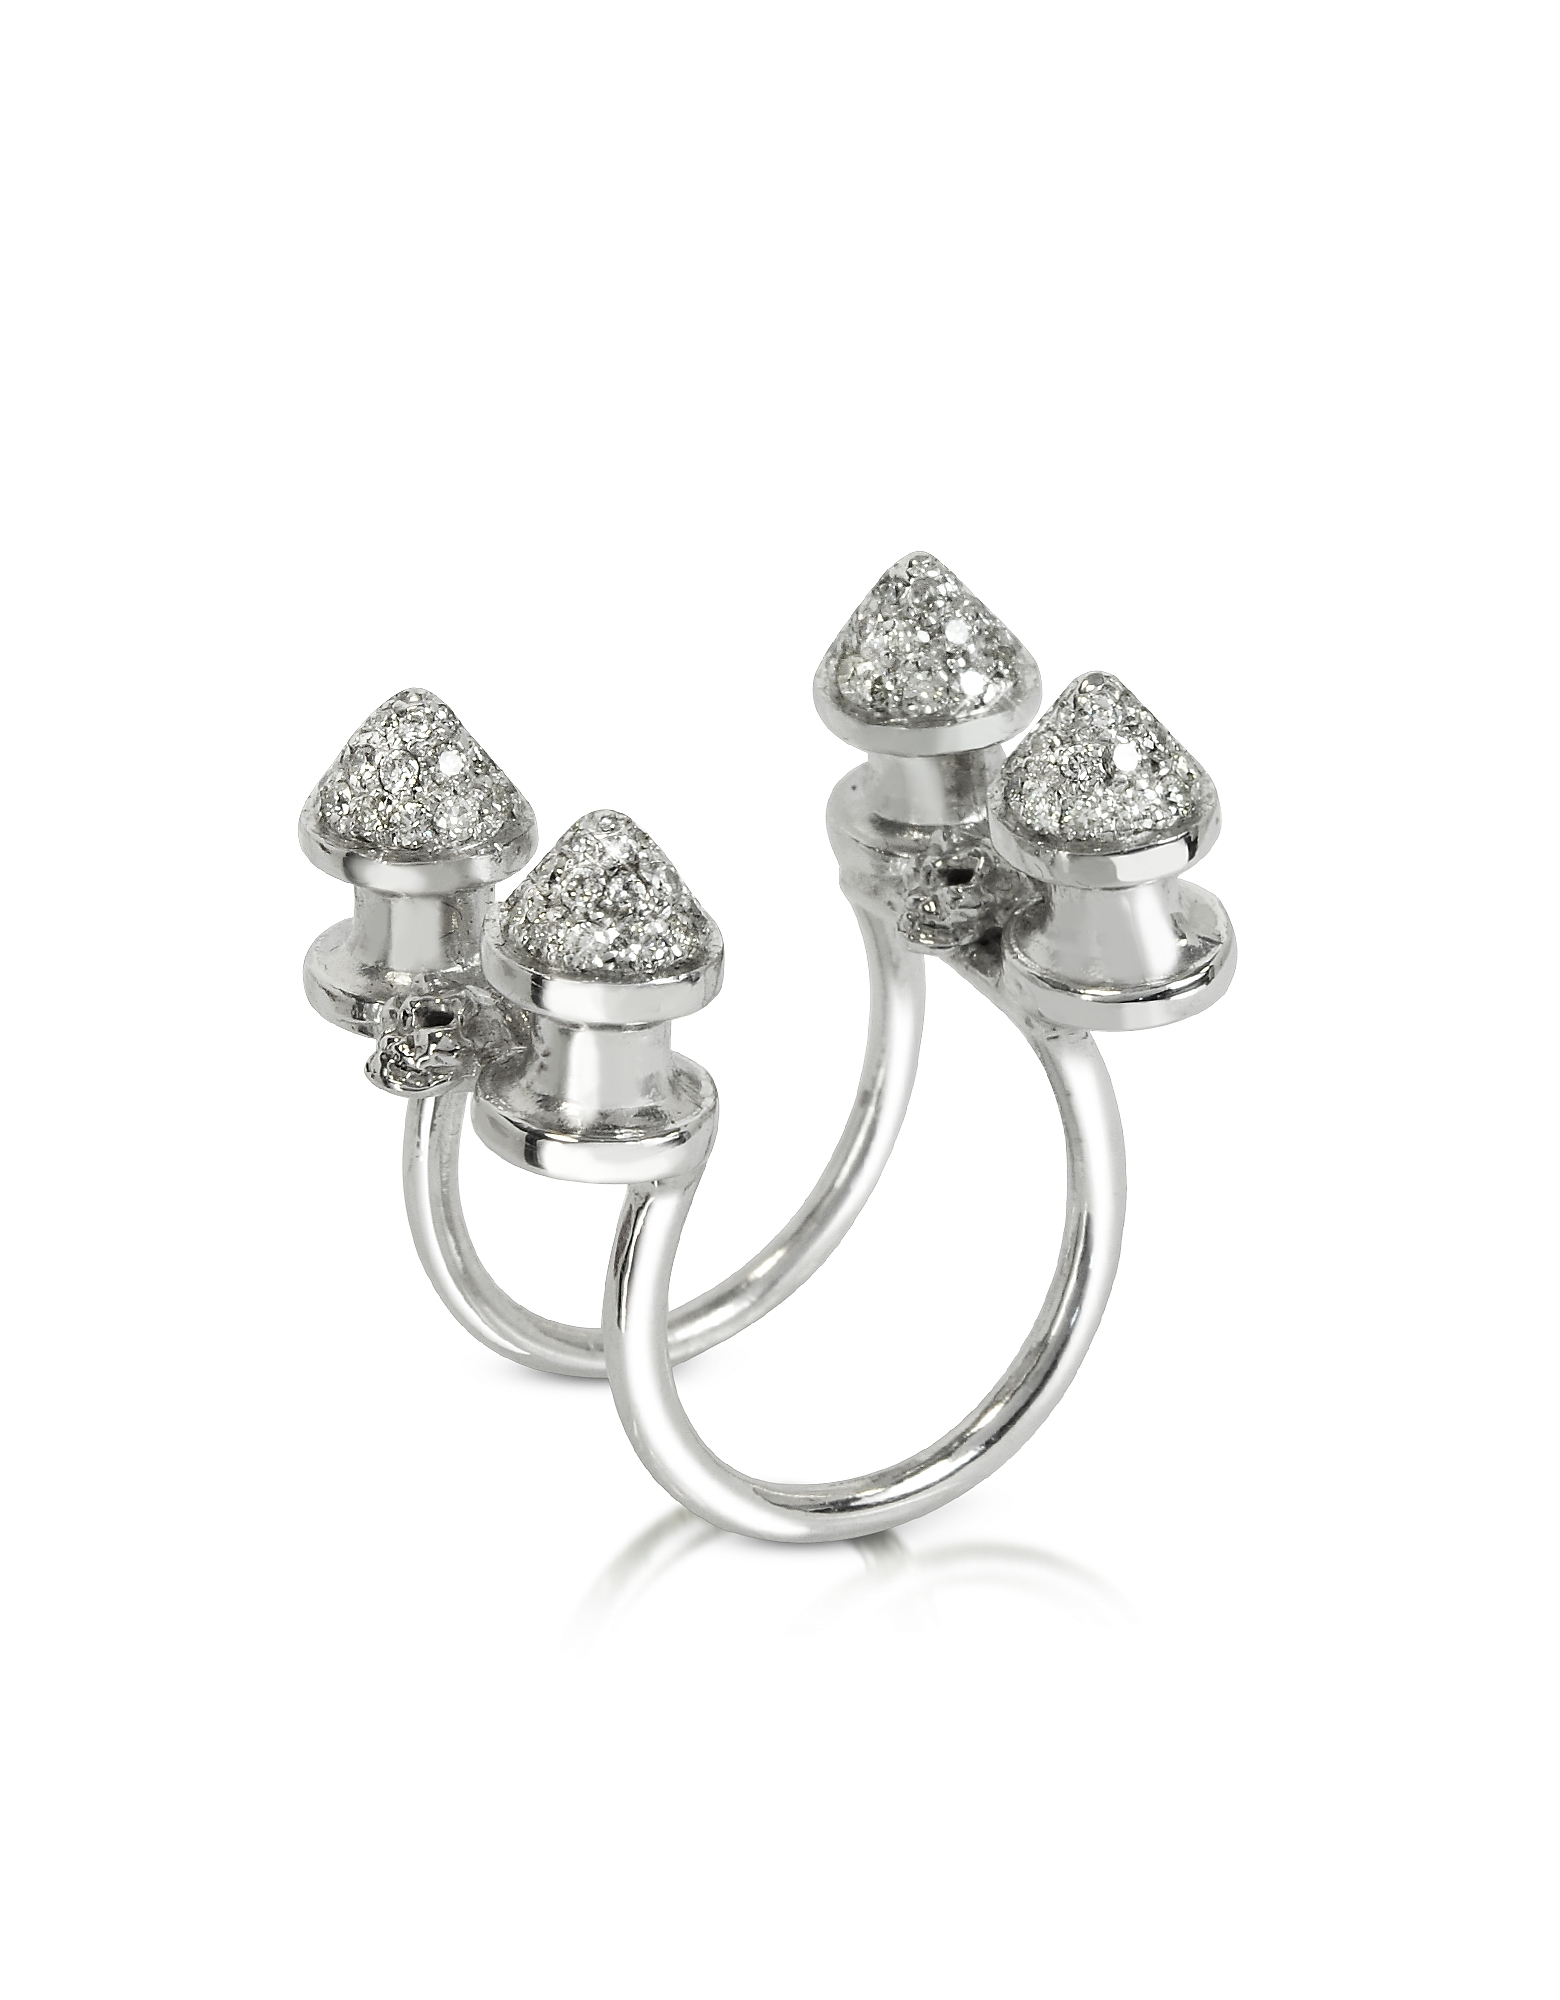 Bernard Delettrez Rings, Four Studs with Diamonds Ring